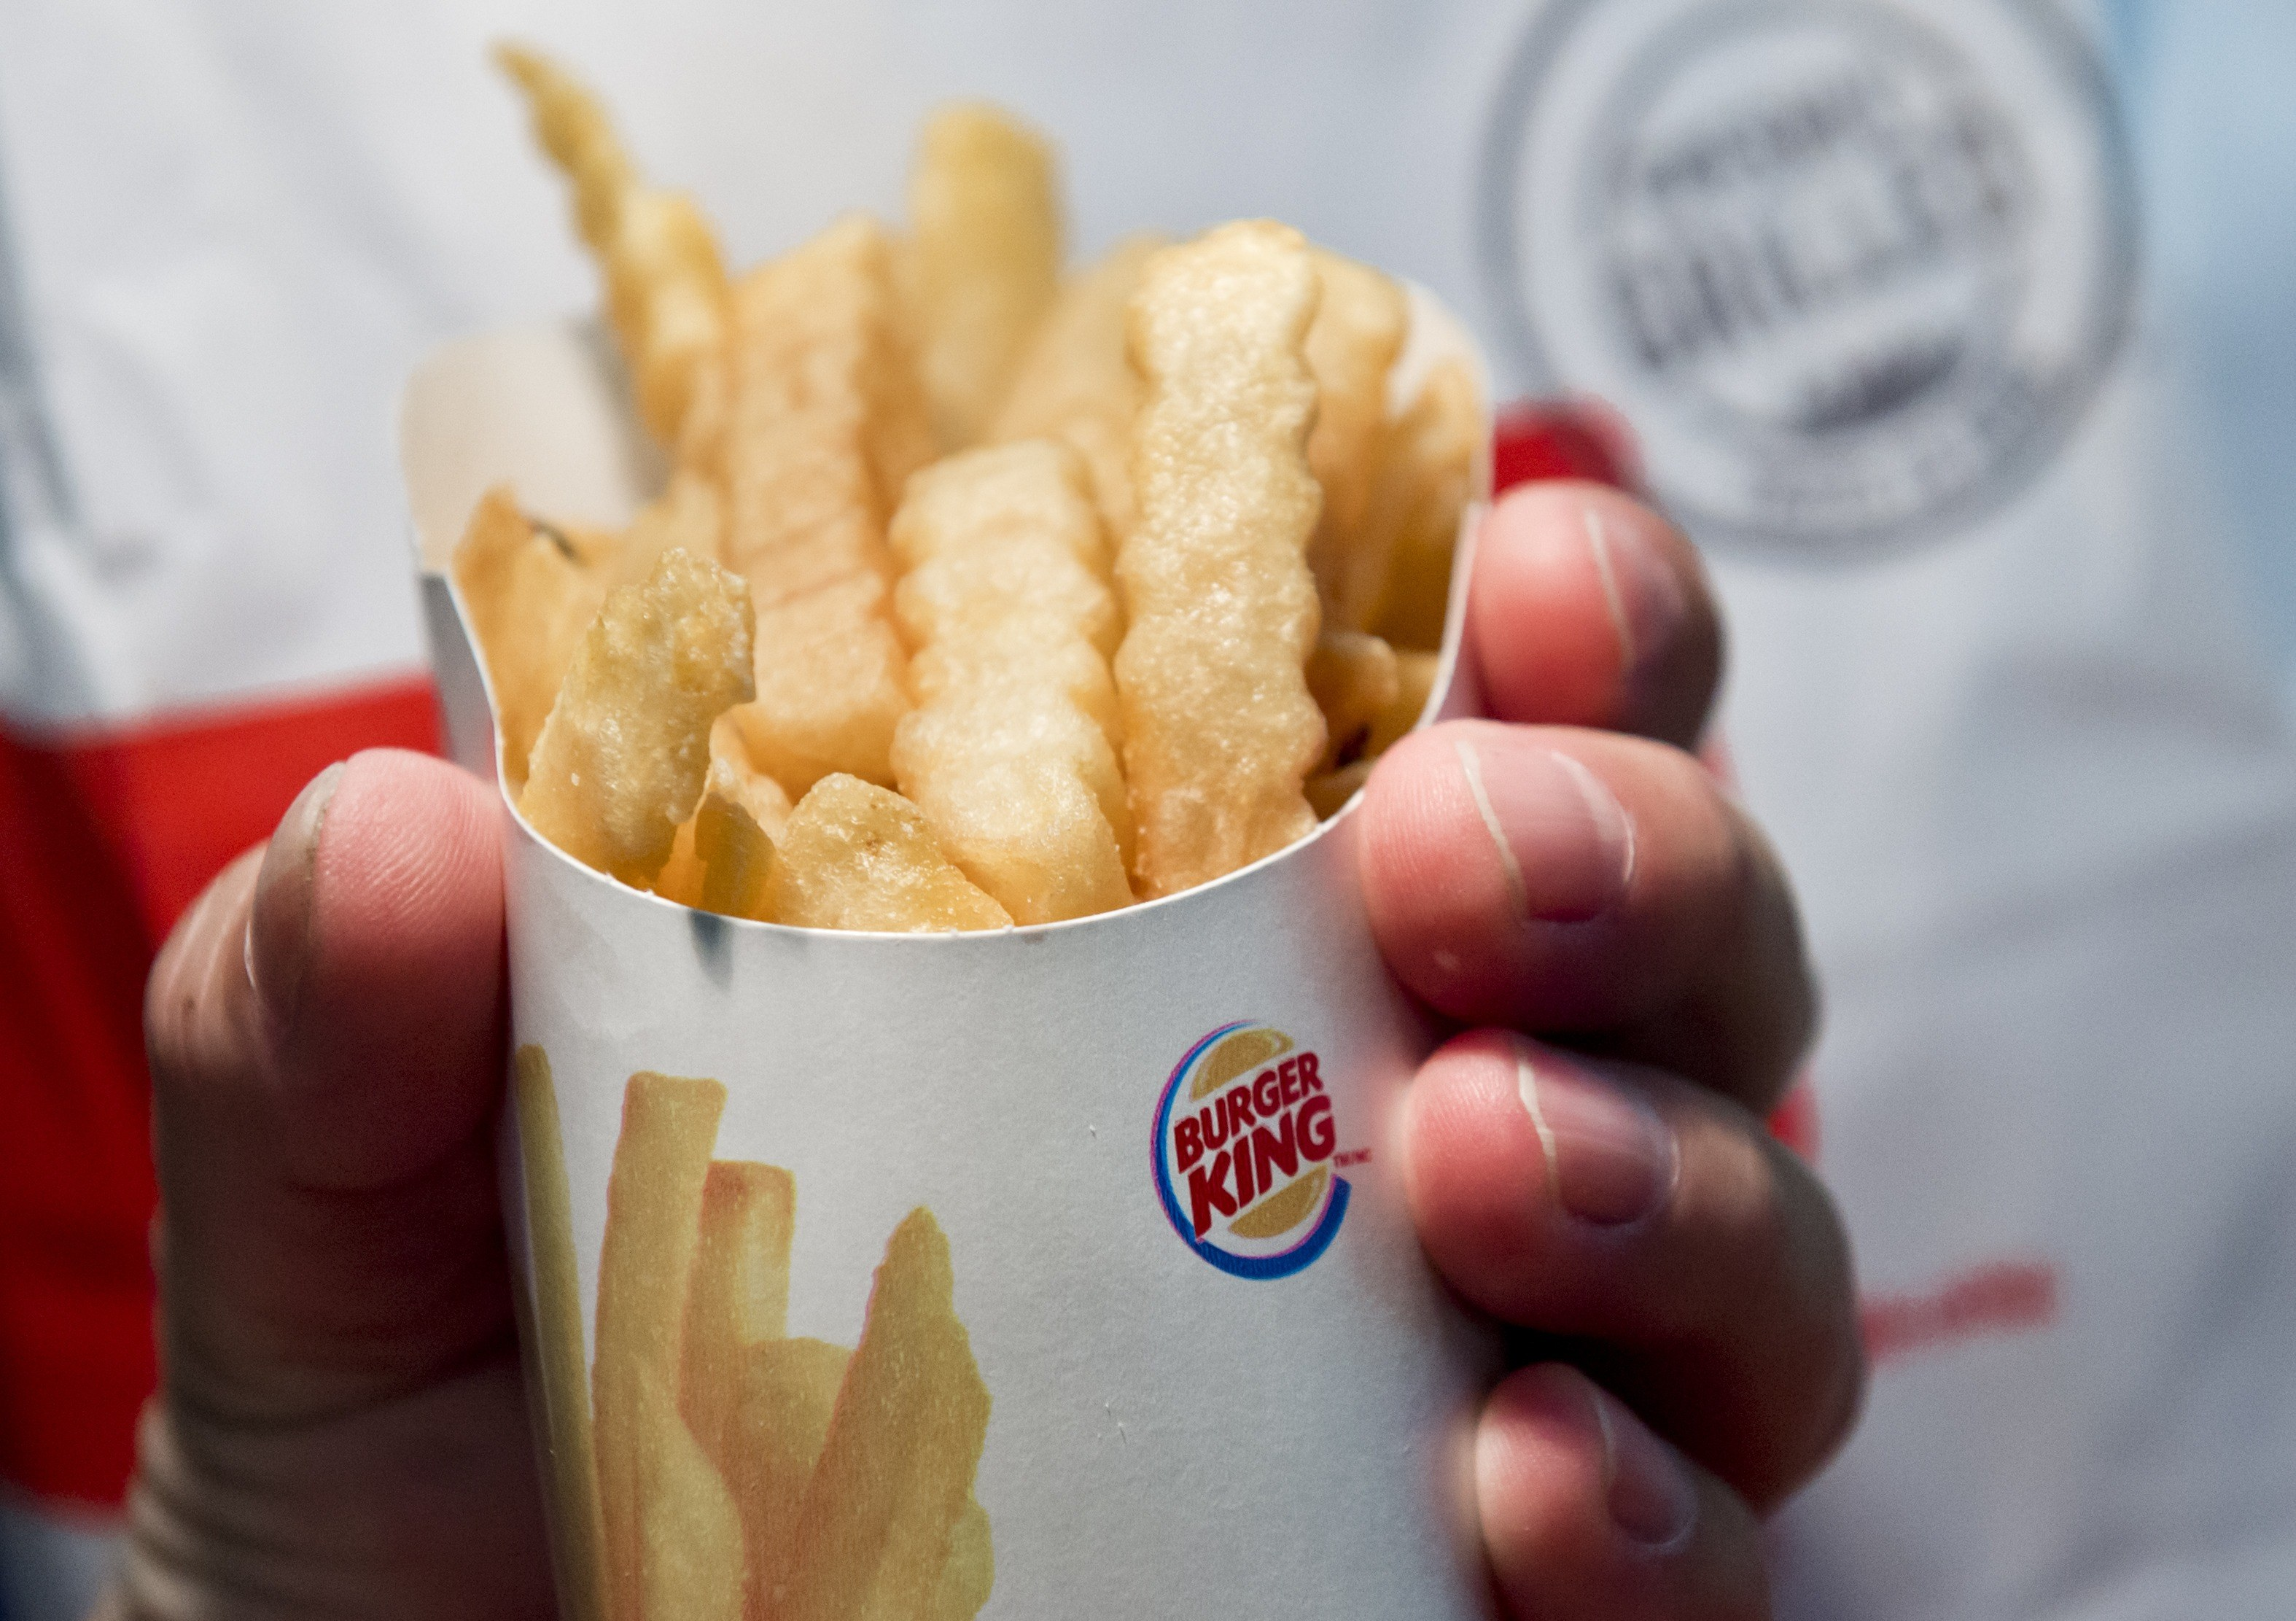 Satisfries, a lower calorie and lower fat french fry from the fast food restaurant chain Burger King